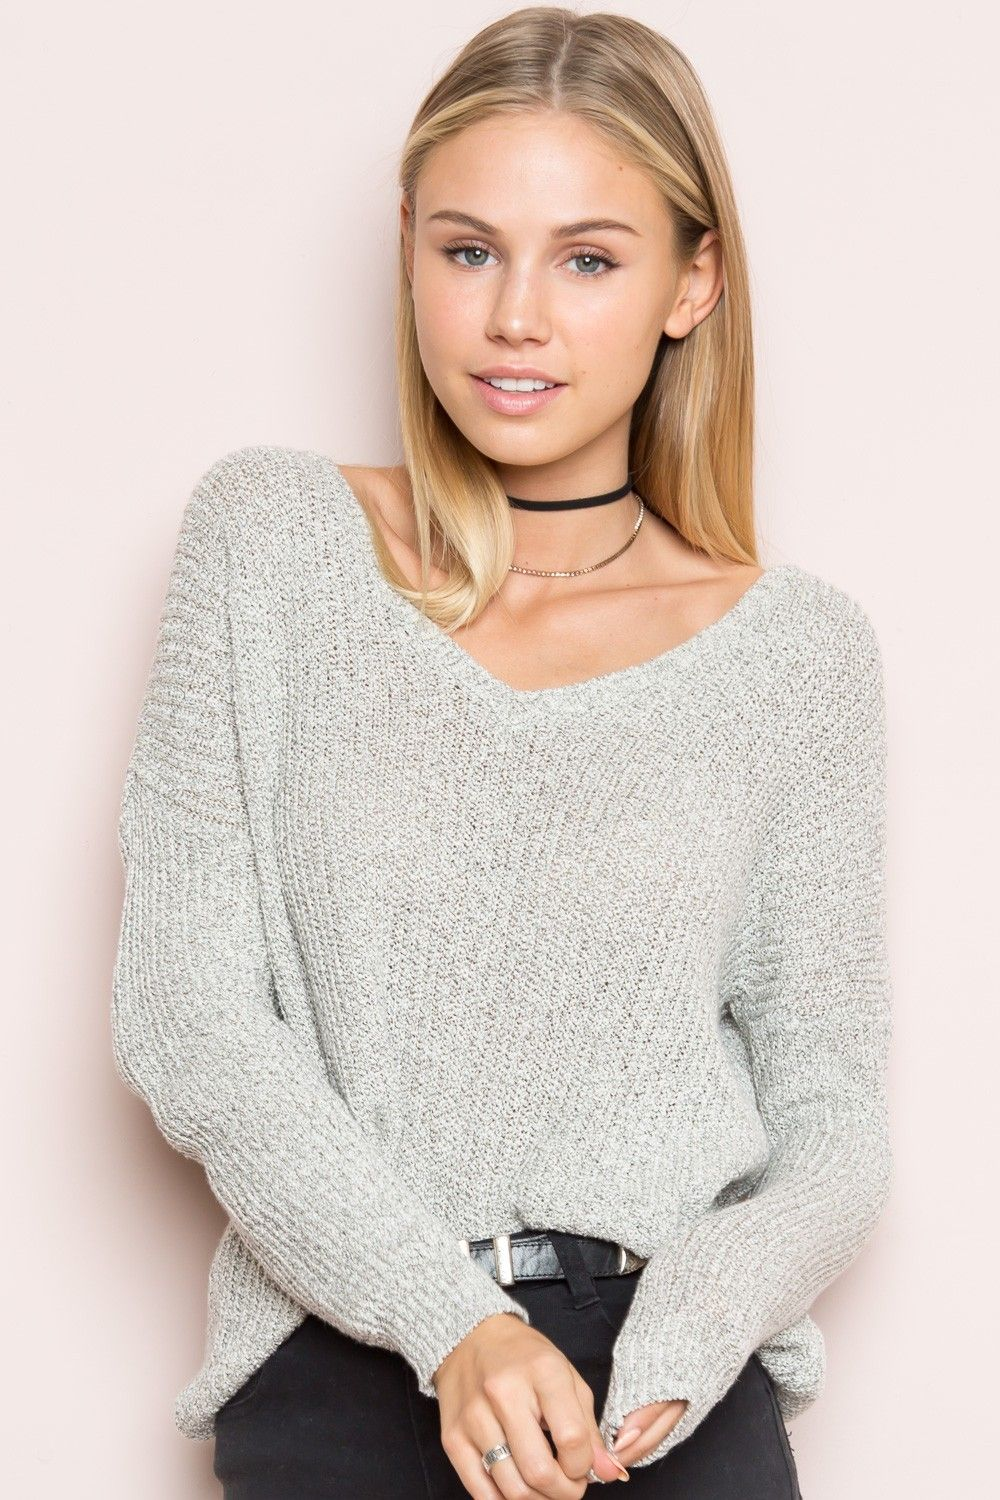 ce24f59739 Welcome to Brandy Melville USA Brandy Melville Fall, Brandy Melville  Sweaters, Brandy Melville Outfits